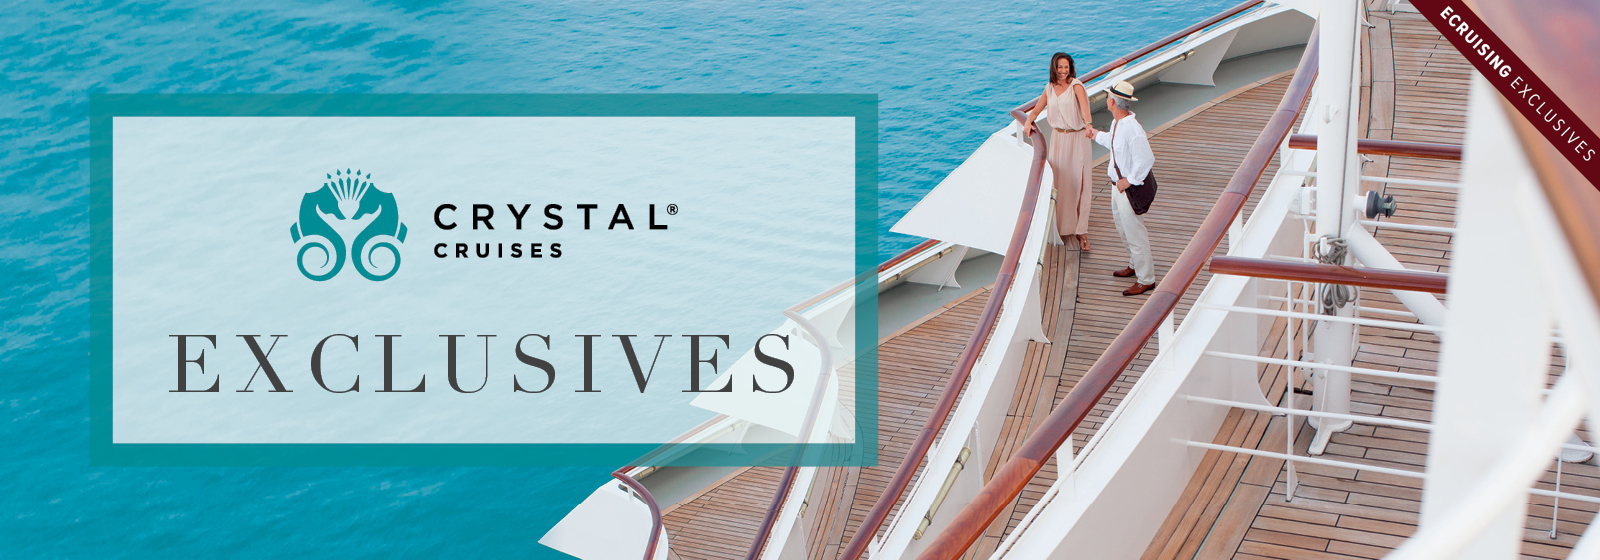 Crystal Exclusives1